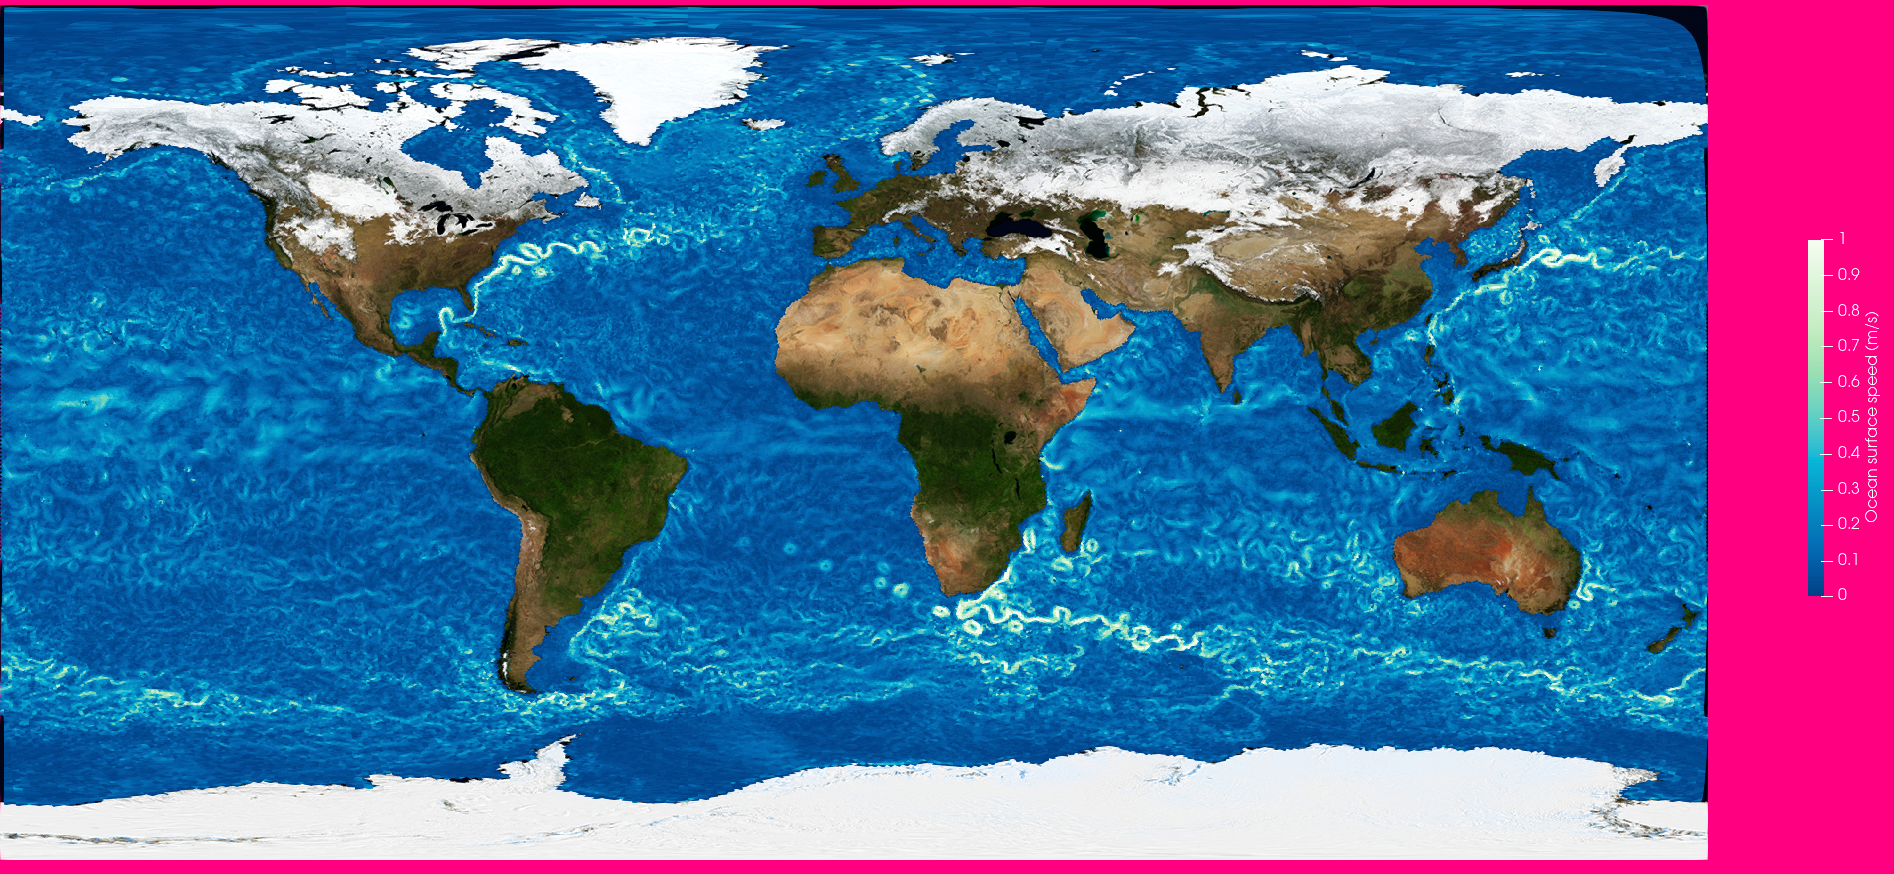 source/Paraview/Examples/2D_ocean_example/2d-ocean-with-earth-and-adjustments.png